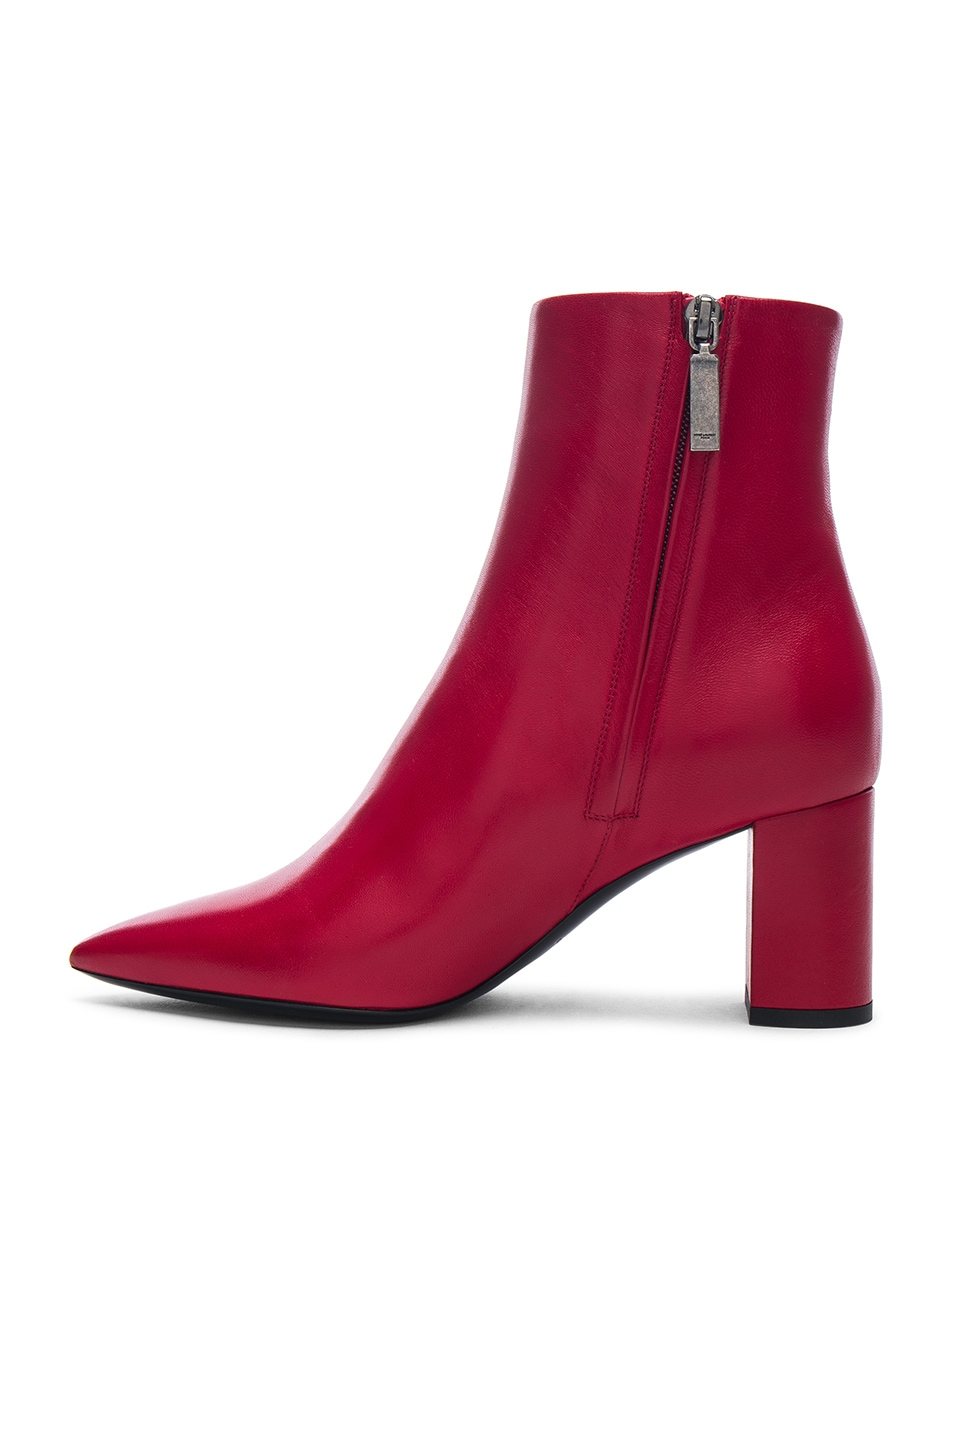 4300e7e0 Saint Laurent Leather Betty Heeled Ankle Boots in Eros Red ...